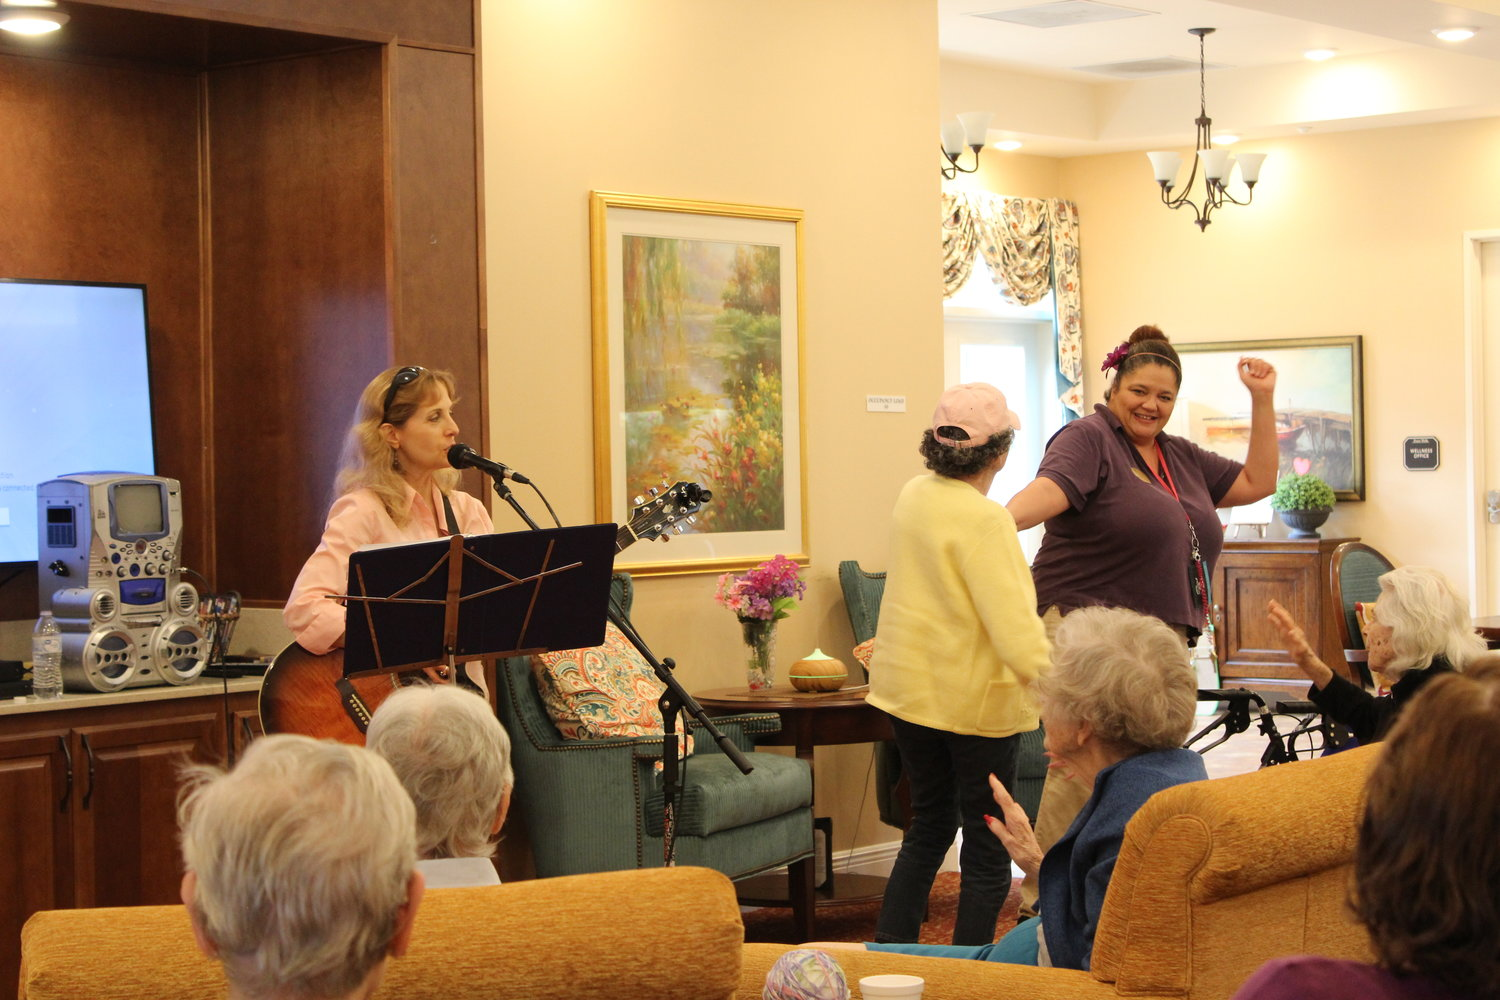 Visiting musician India Taylor performs for the residents of Poet's Walk Cedar Park, a local memory care facility, on Sept. 29.